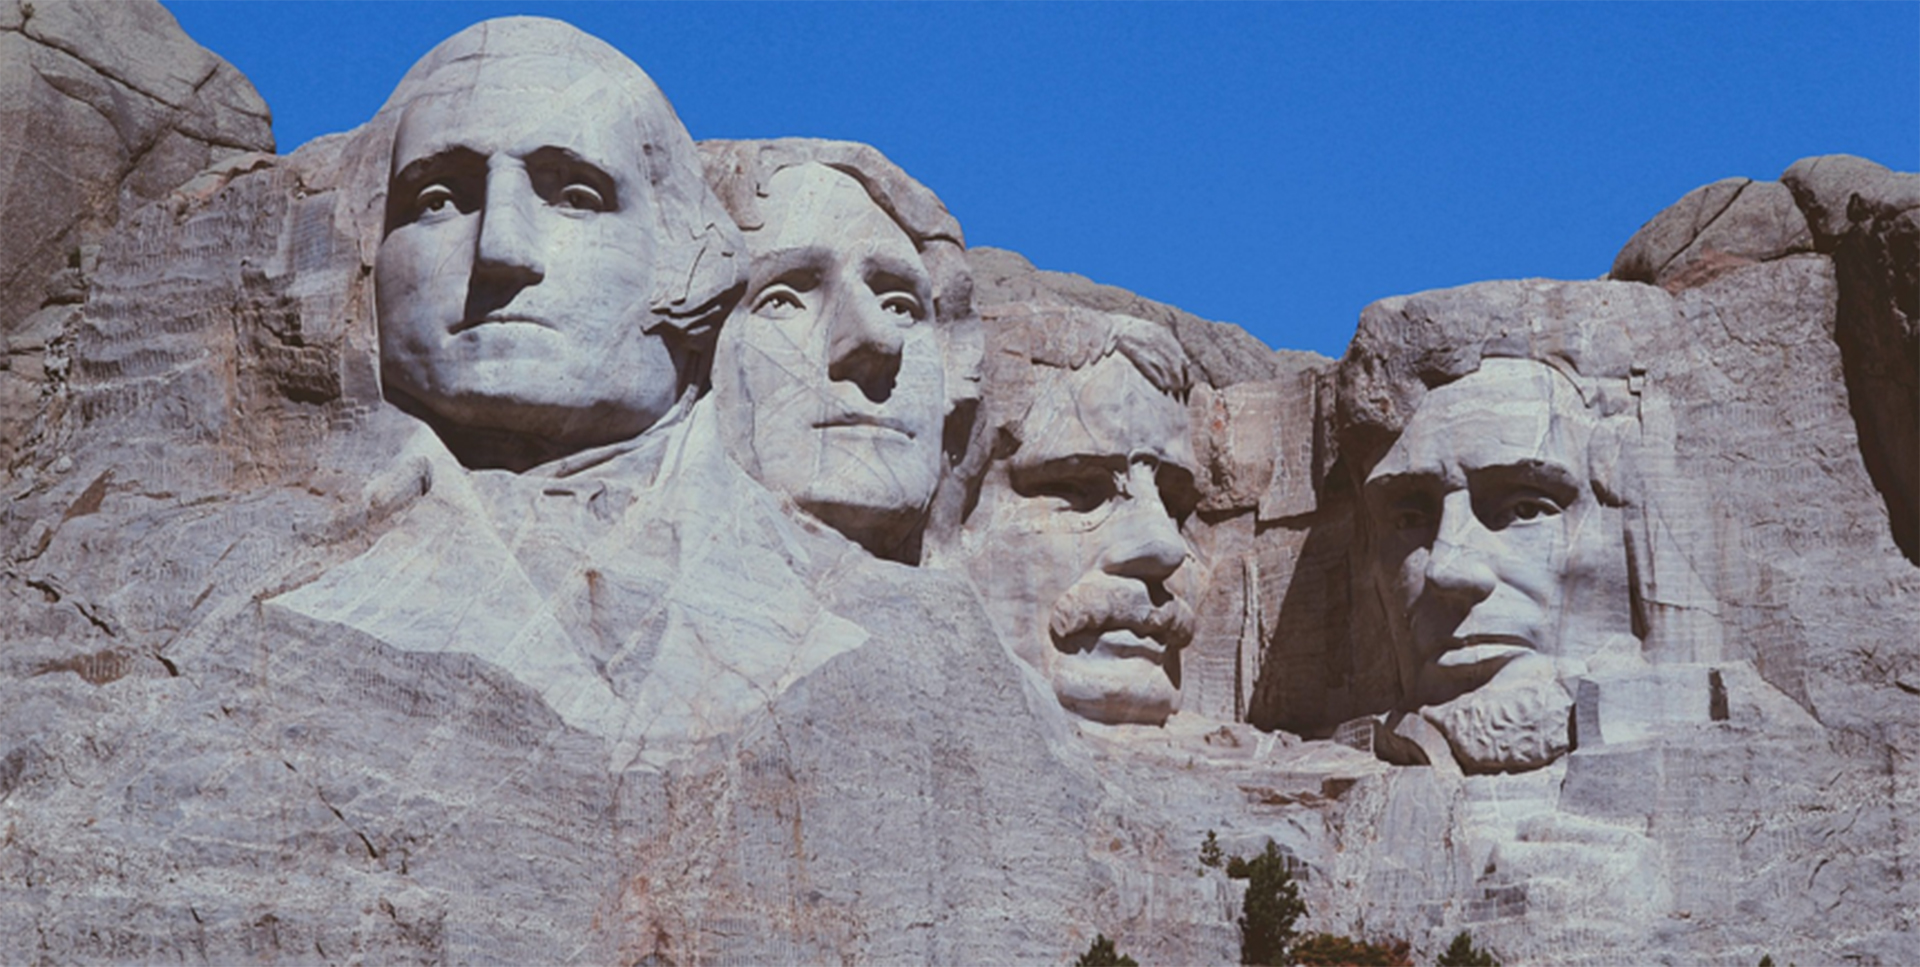 mount-rushmore-in-black-hills-south-dakota